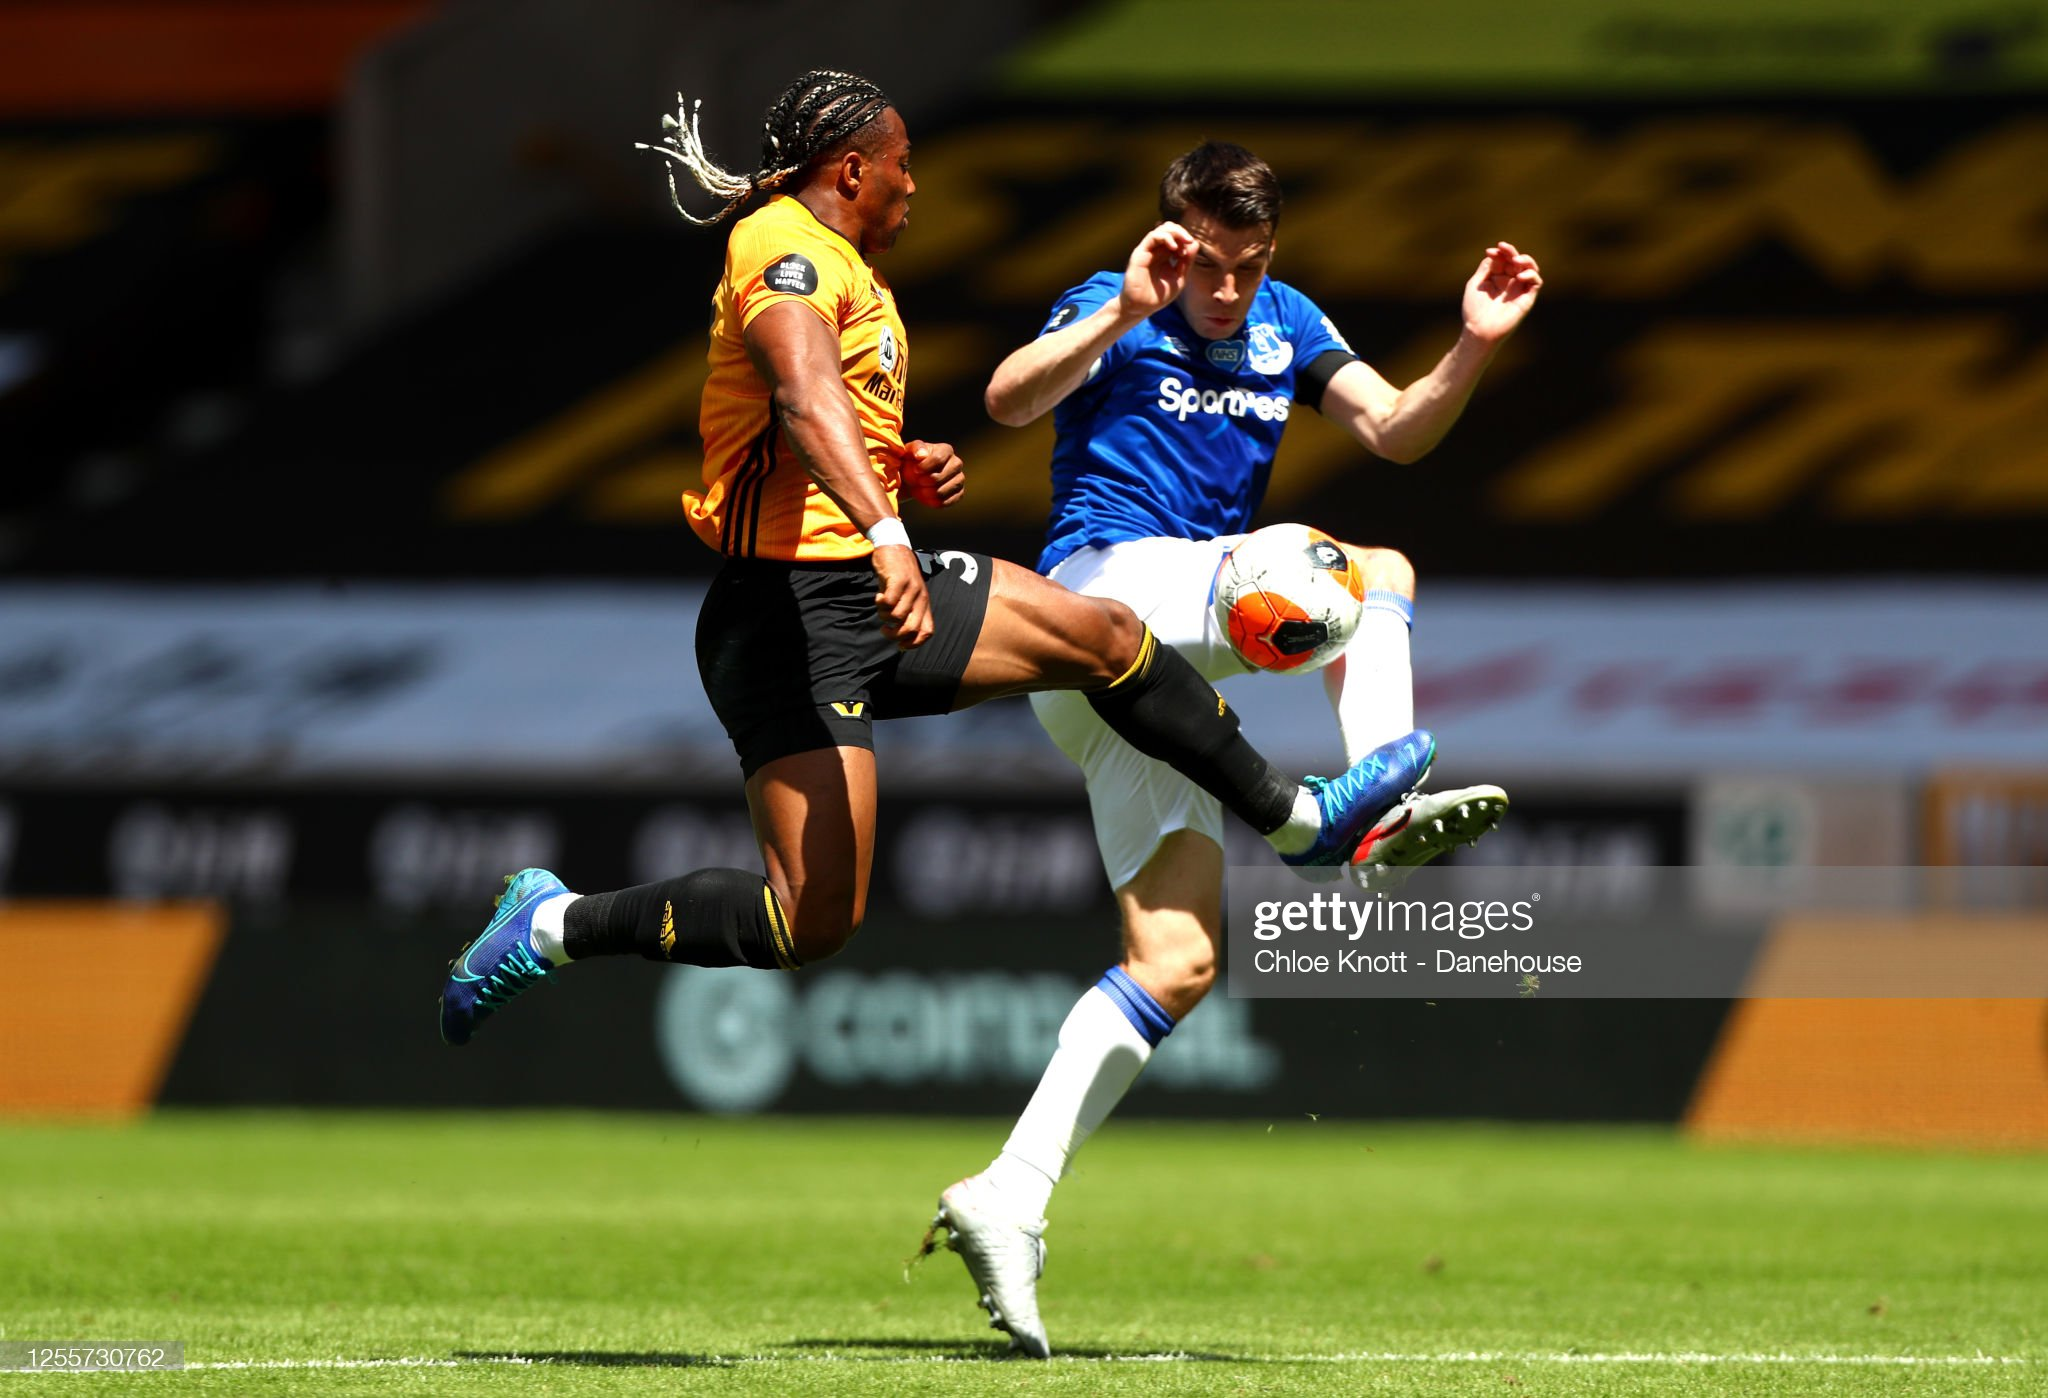 Wolves vs Everton Preview, prediction and odds - Soccer Times